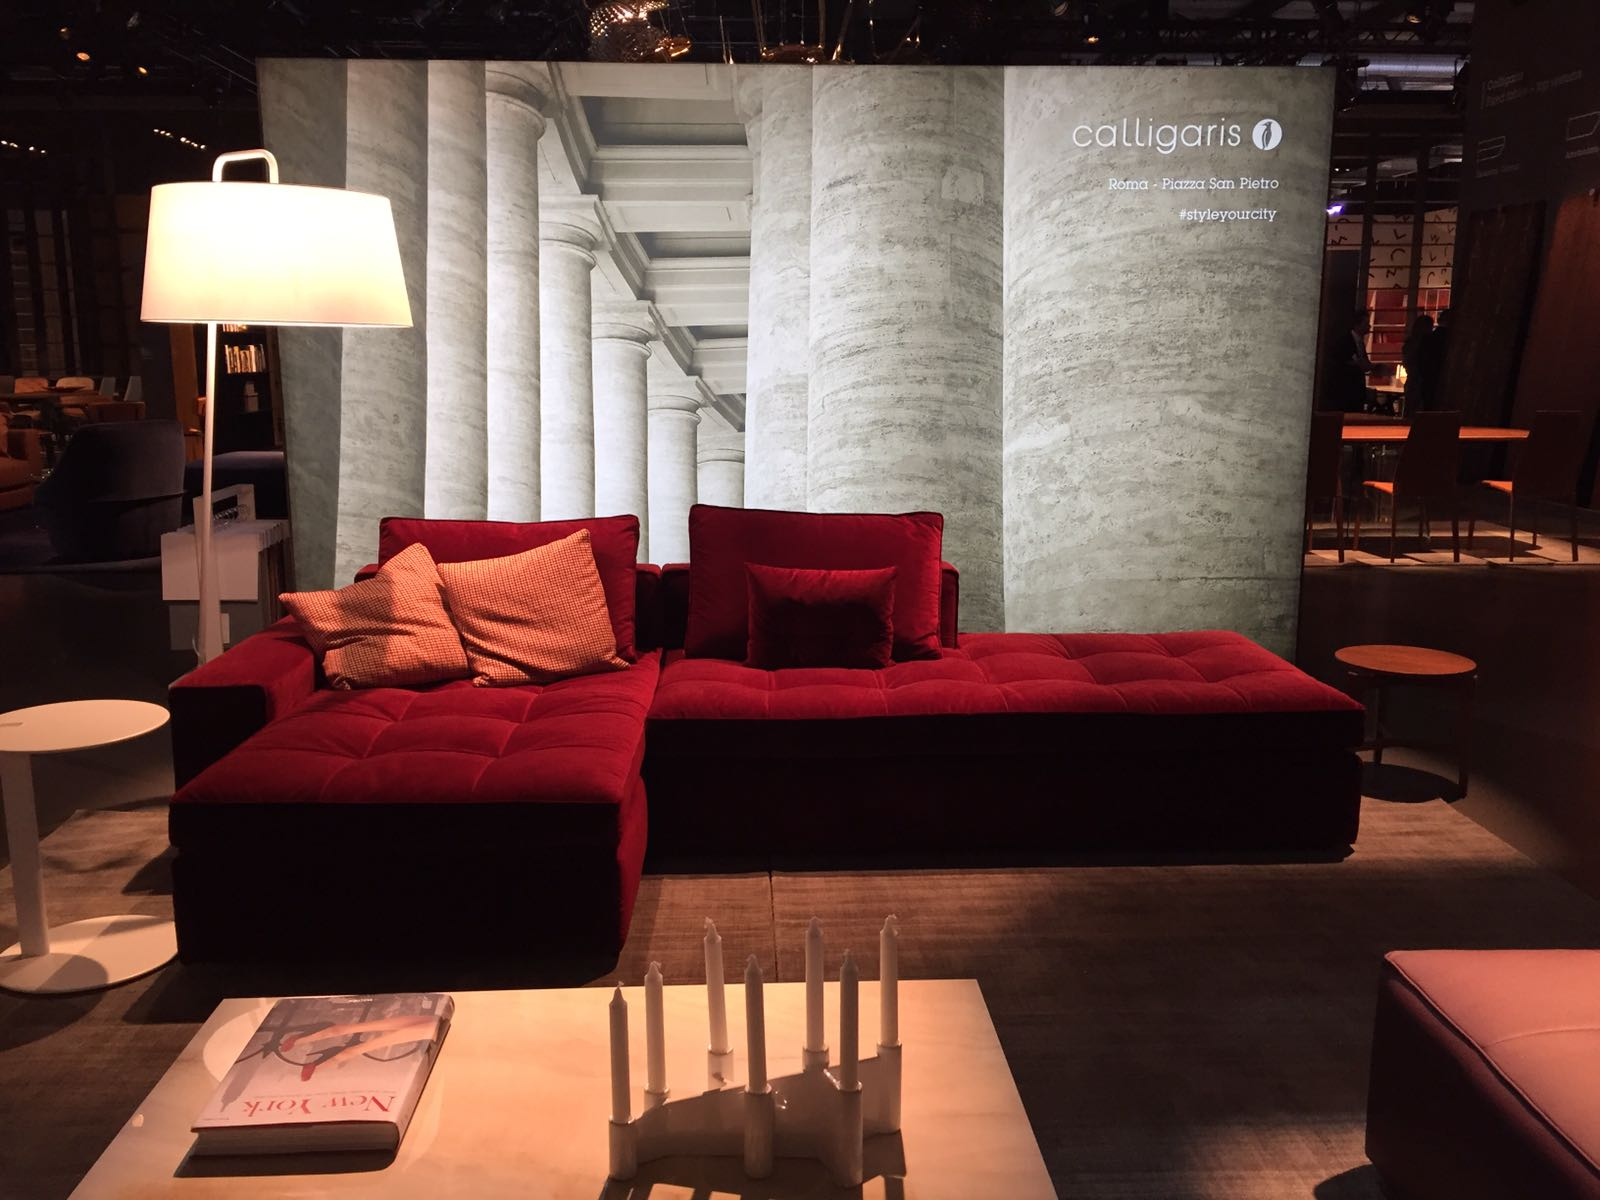 Color Trends Spotted at iSaloni 2017 | You can visit us at our website, www.essentialhome.eu and check our Pinterest @midcenturyblog to get more #MidCenturyModern inspiration. color trends Color Trends Spotted at iSaloni 2017 Color Trends Spotted at iSaloni 2017